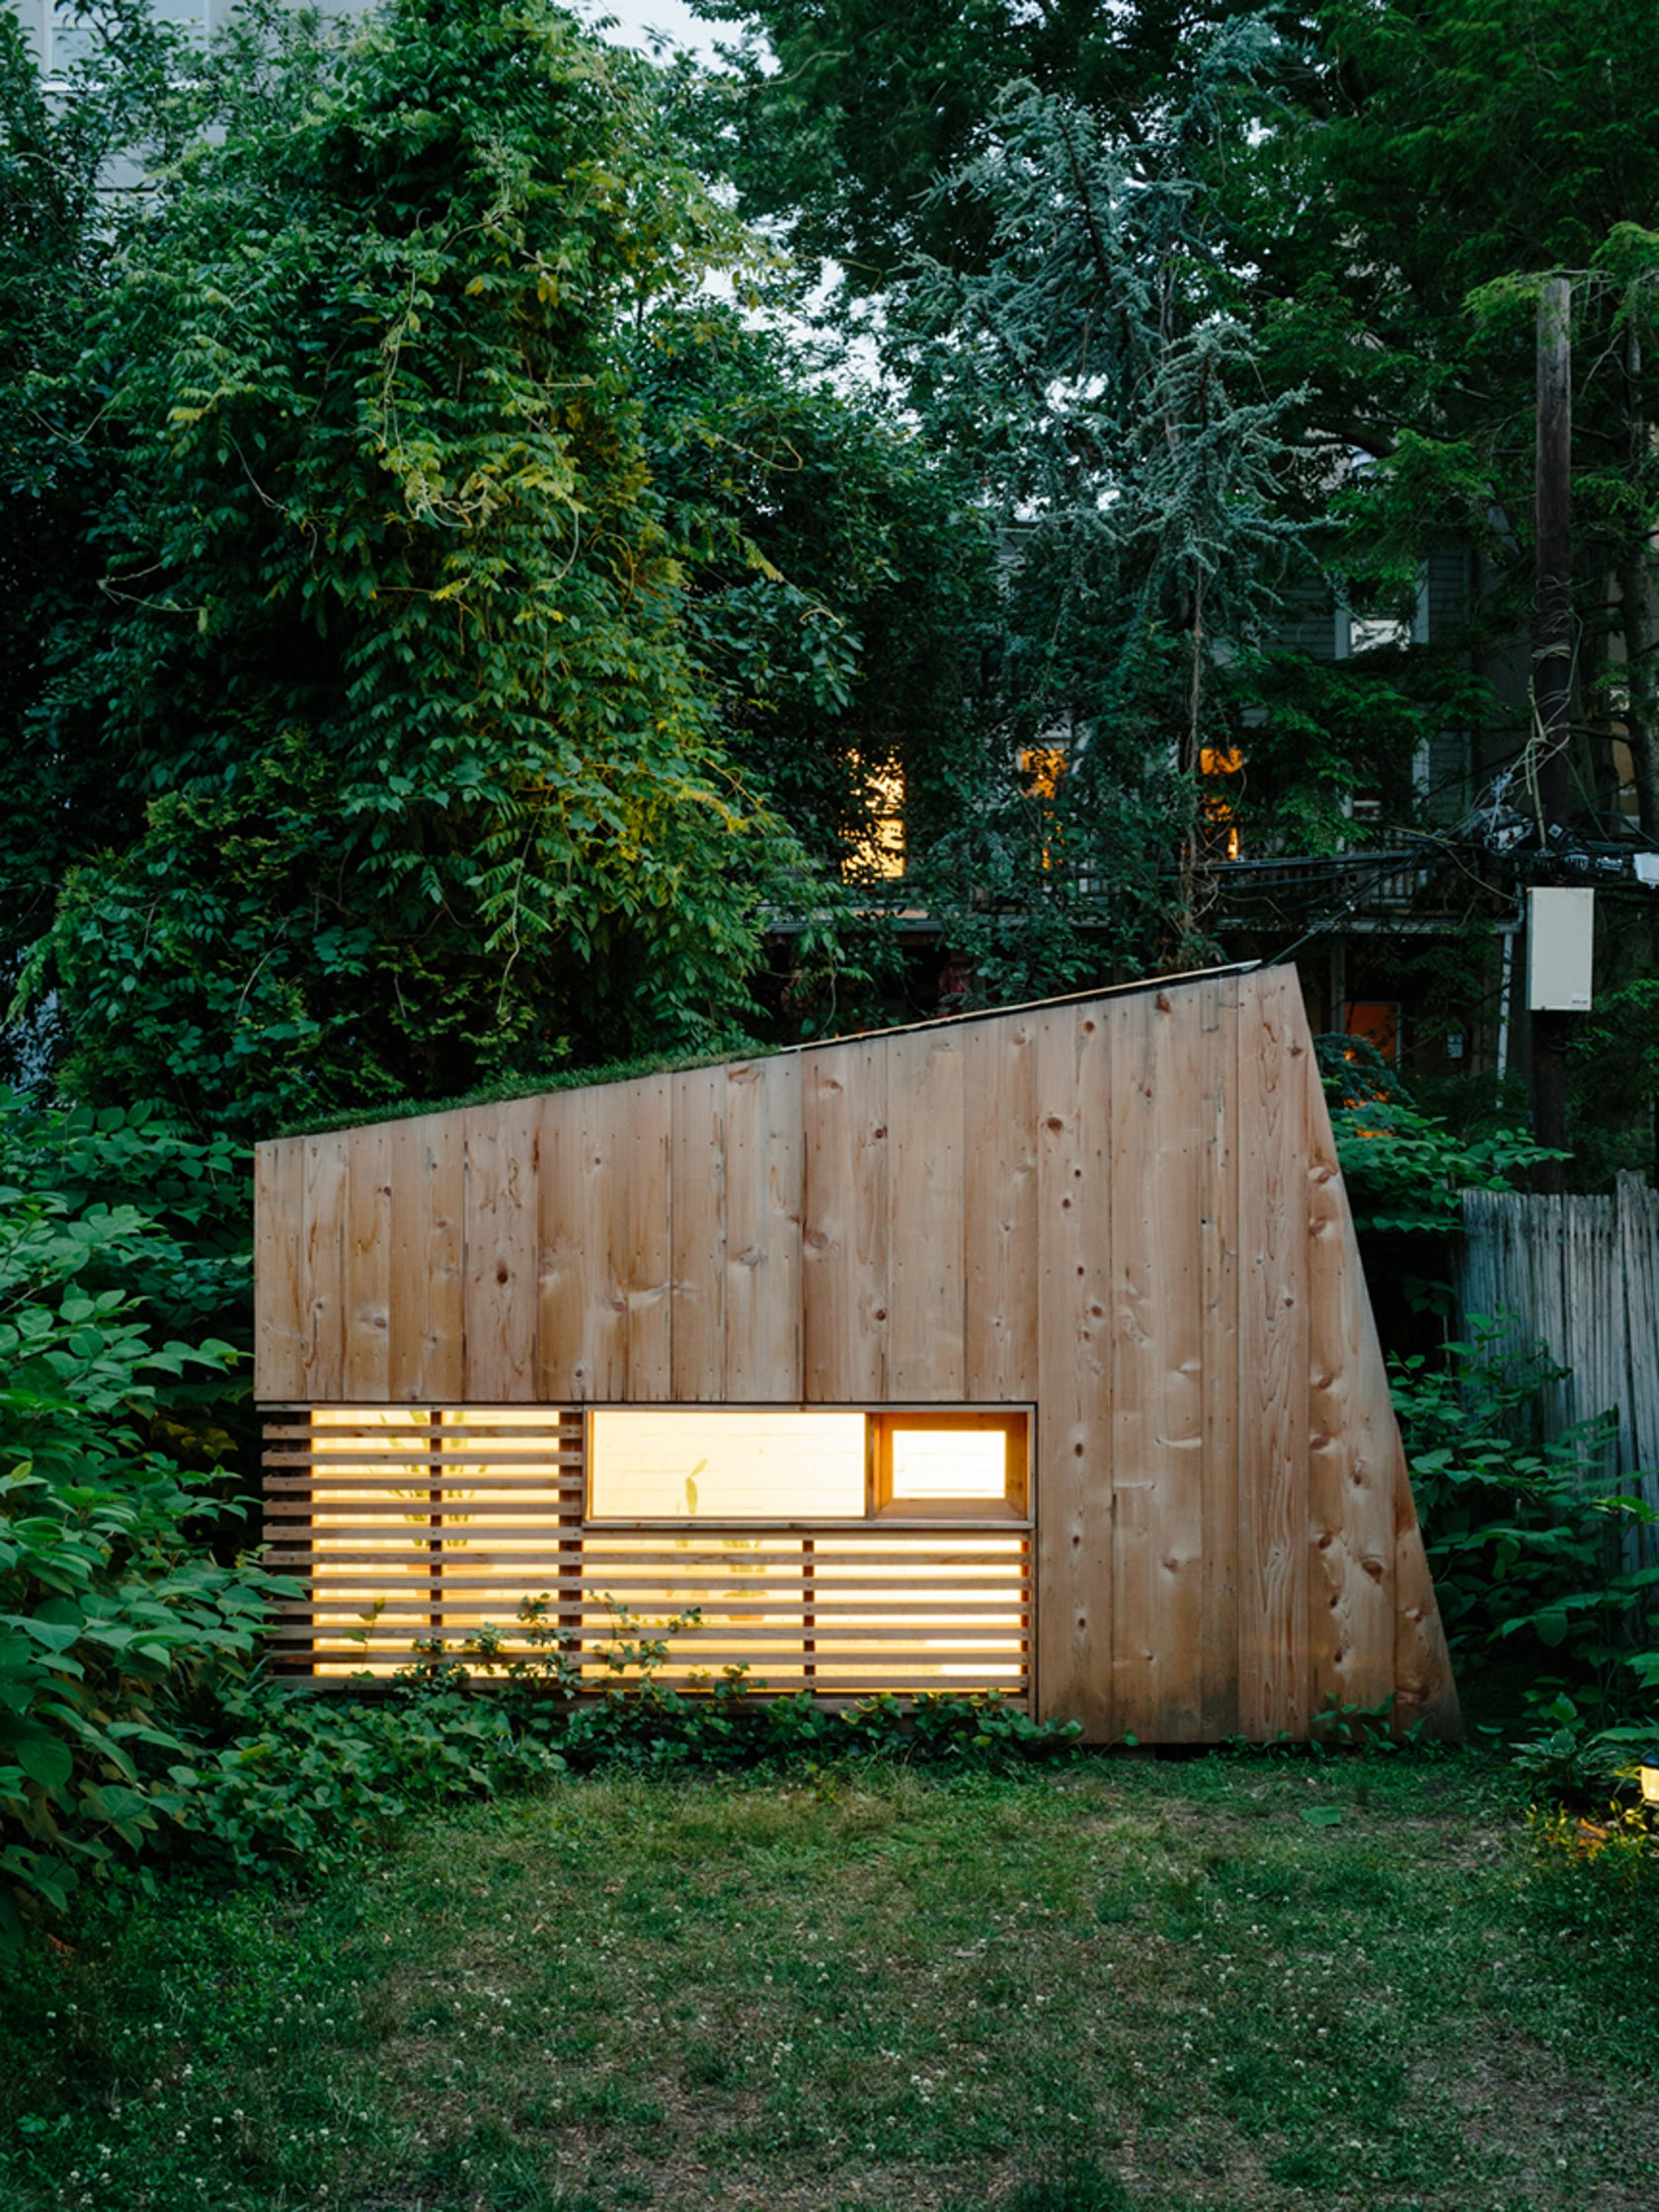 reeds ferry sheds massachusetts by side surprise 10 enchanted garden sheds that blend architecture httpsipinimgcom736x1d7e461d7e465b9f724bd